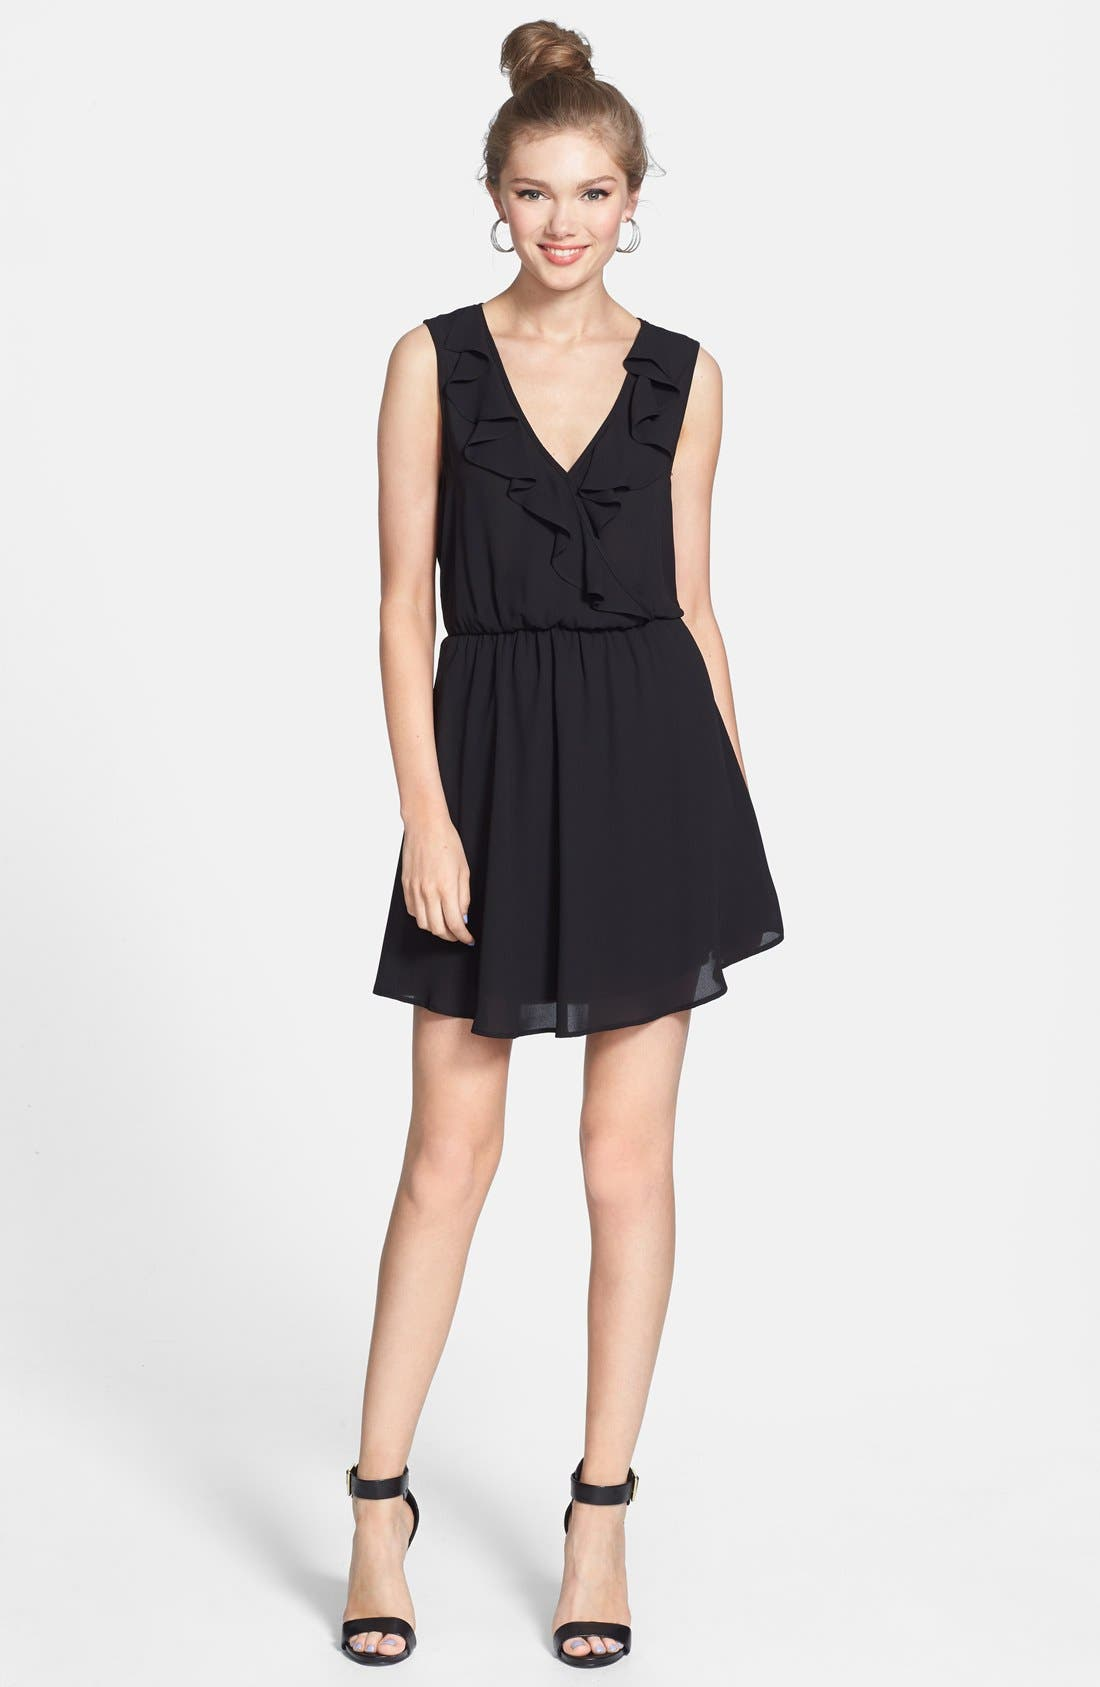 Alternate Image 1 Selected - Lush Ruffle V-Neck Skater Dress (Juniors)